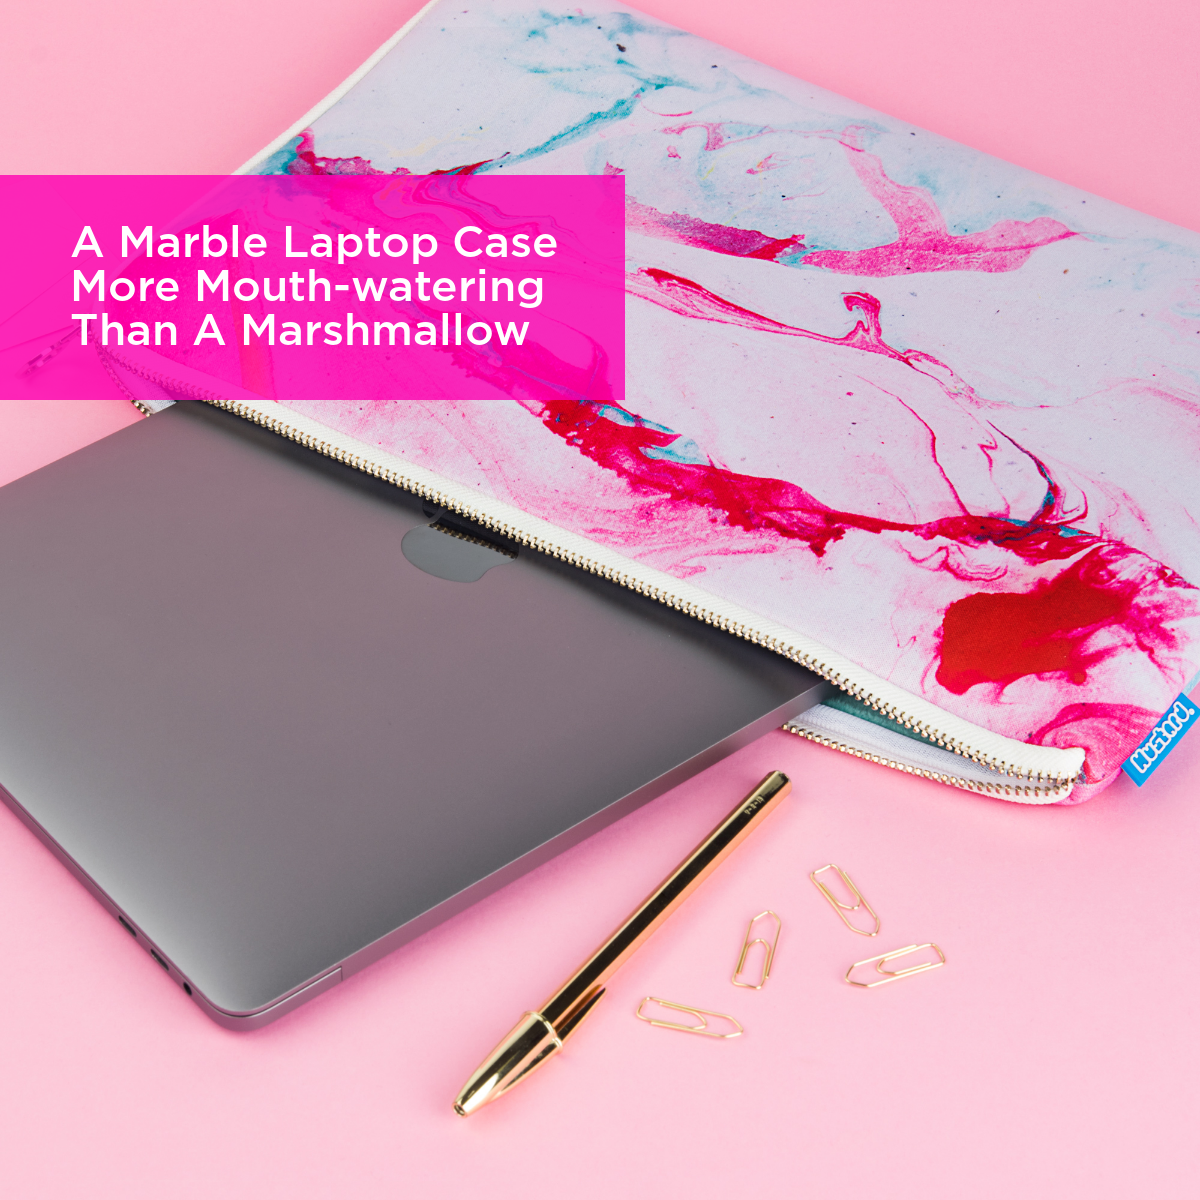 A Marble Laptop Case More Mouth-watering Than A Marshmallow